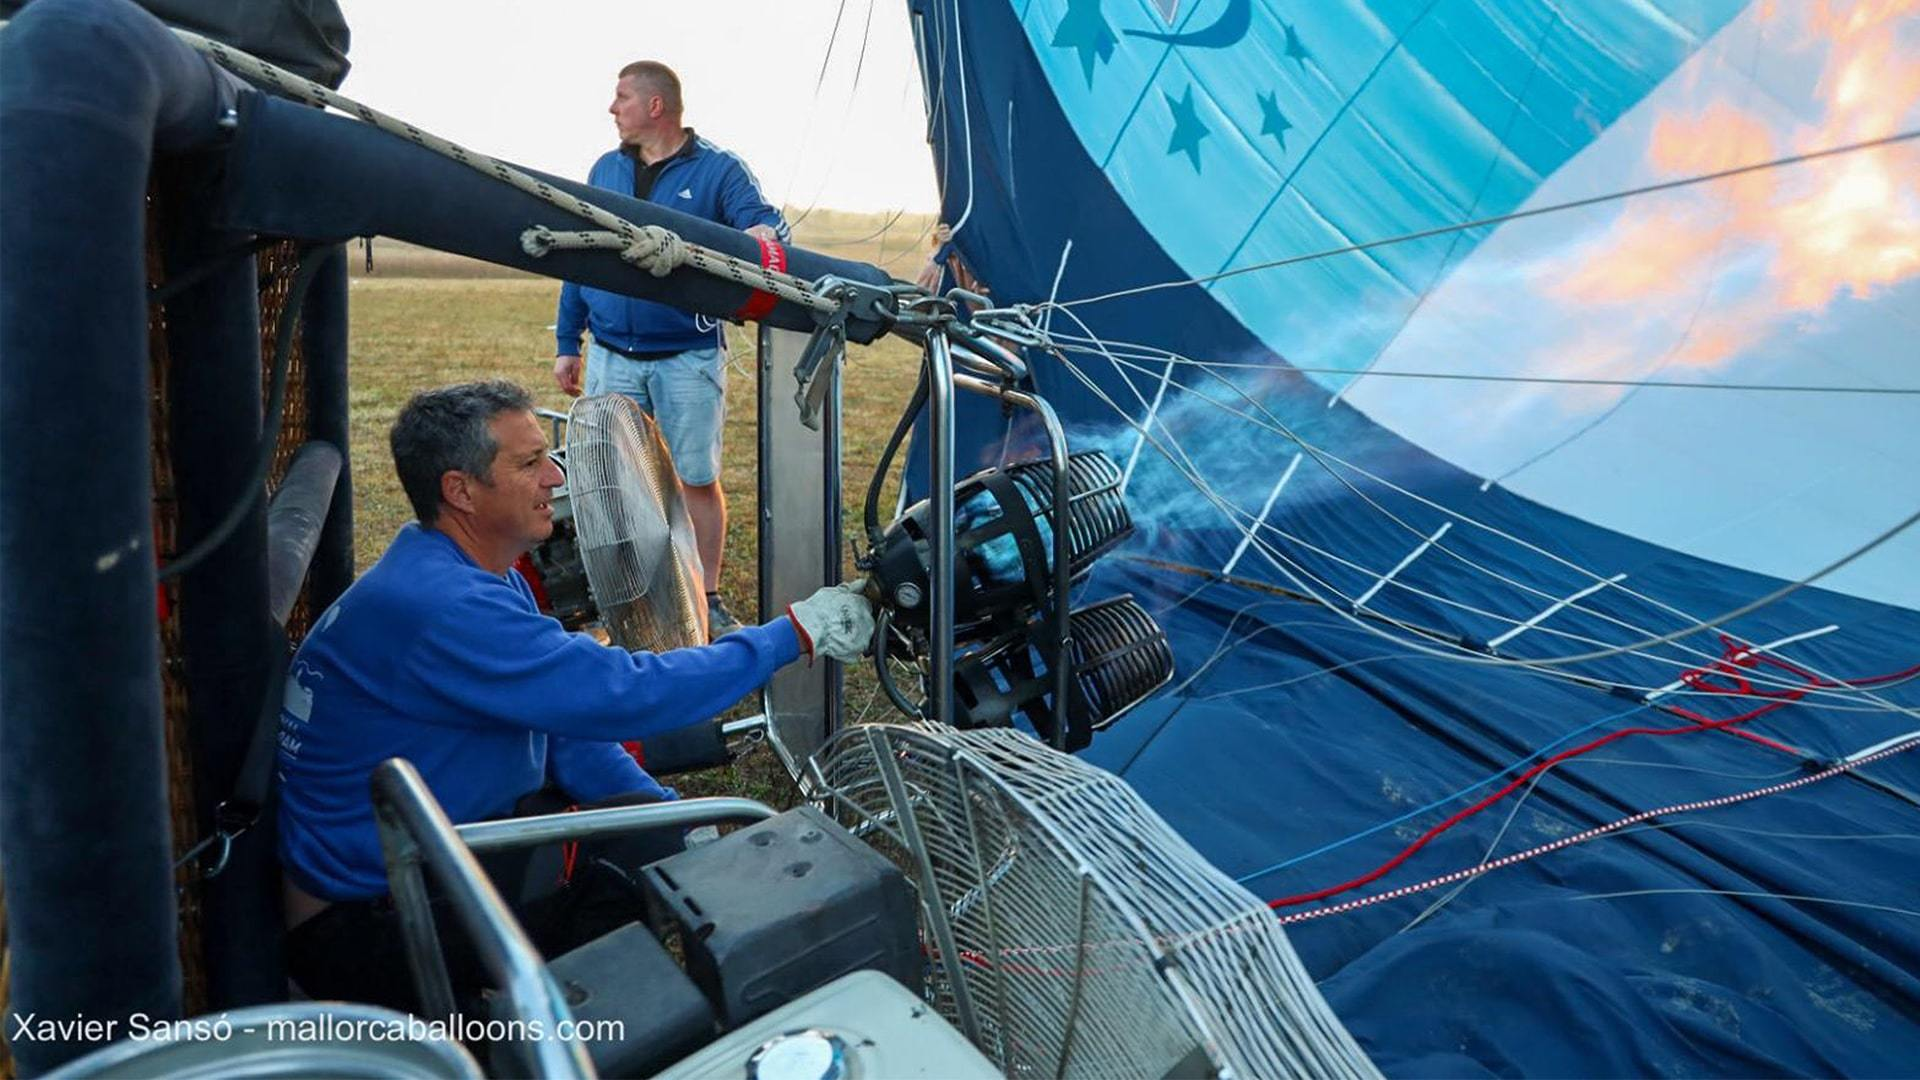 Hot air balloon getting ready mallorca championships min